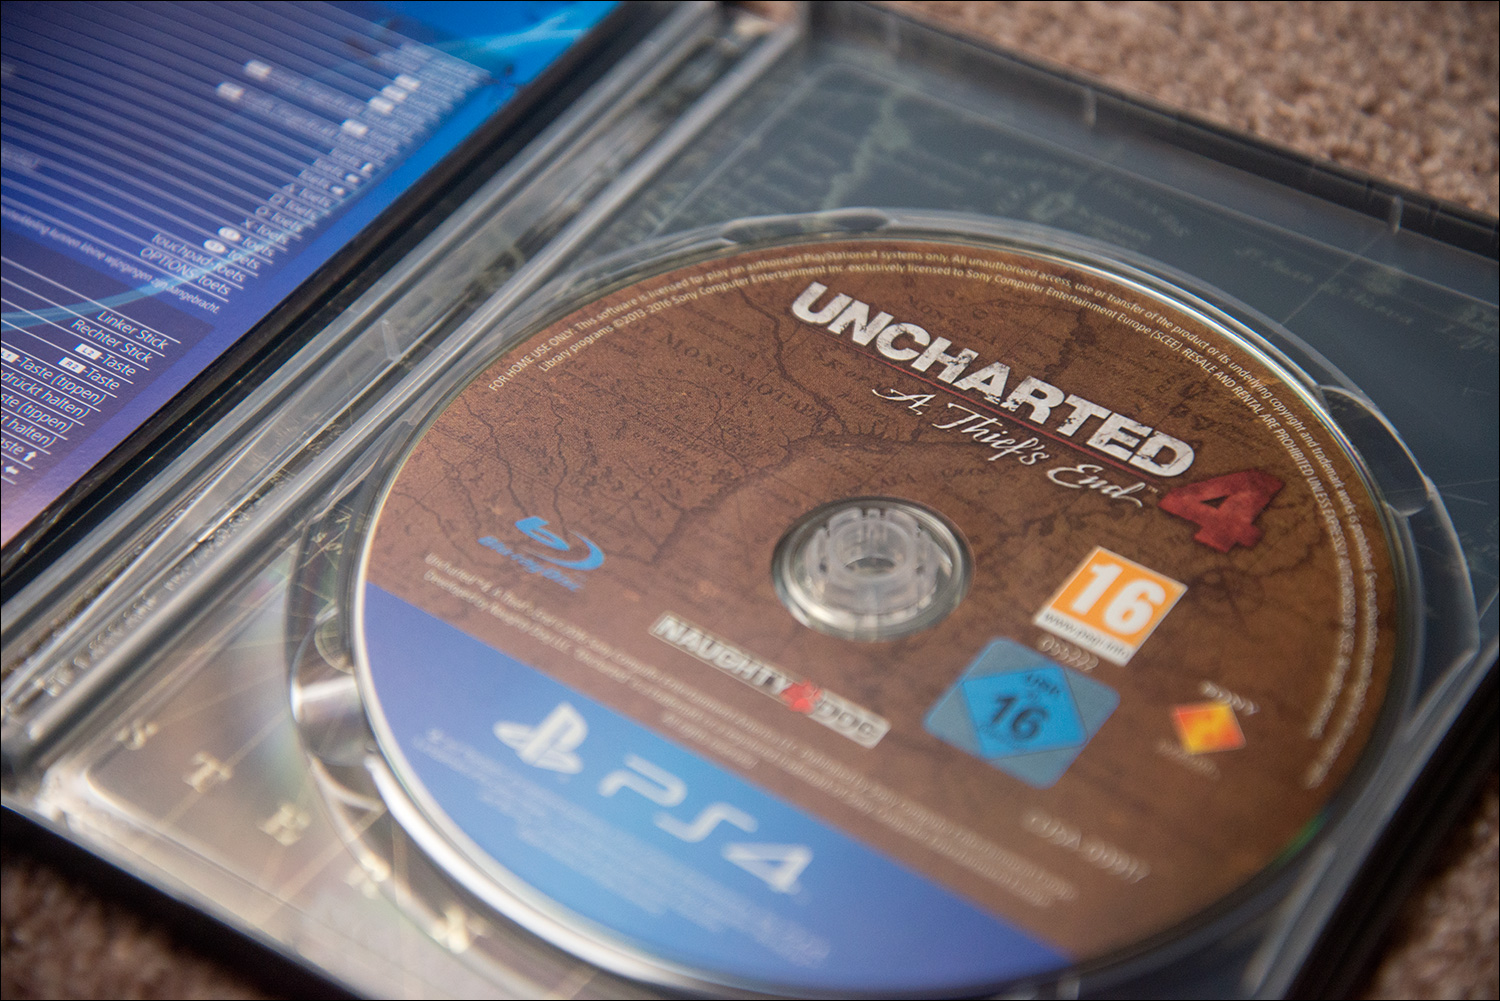 Uncharted-4-Special-Edition-Disc